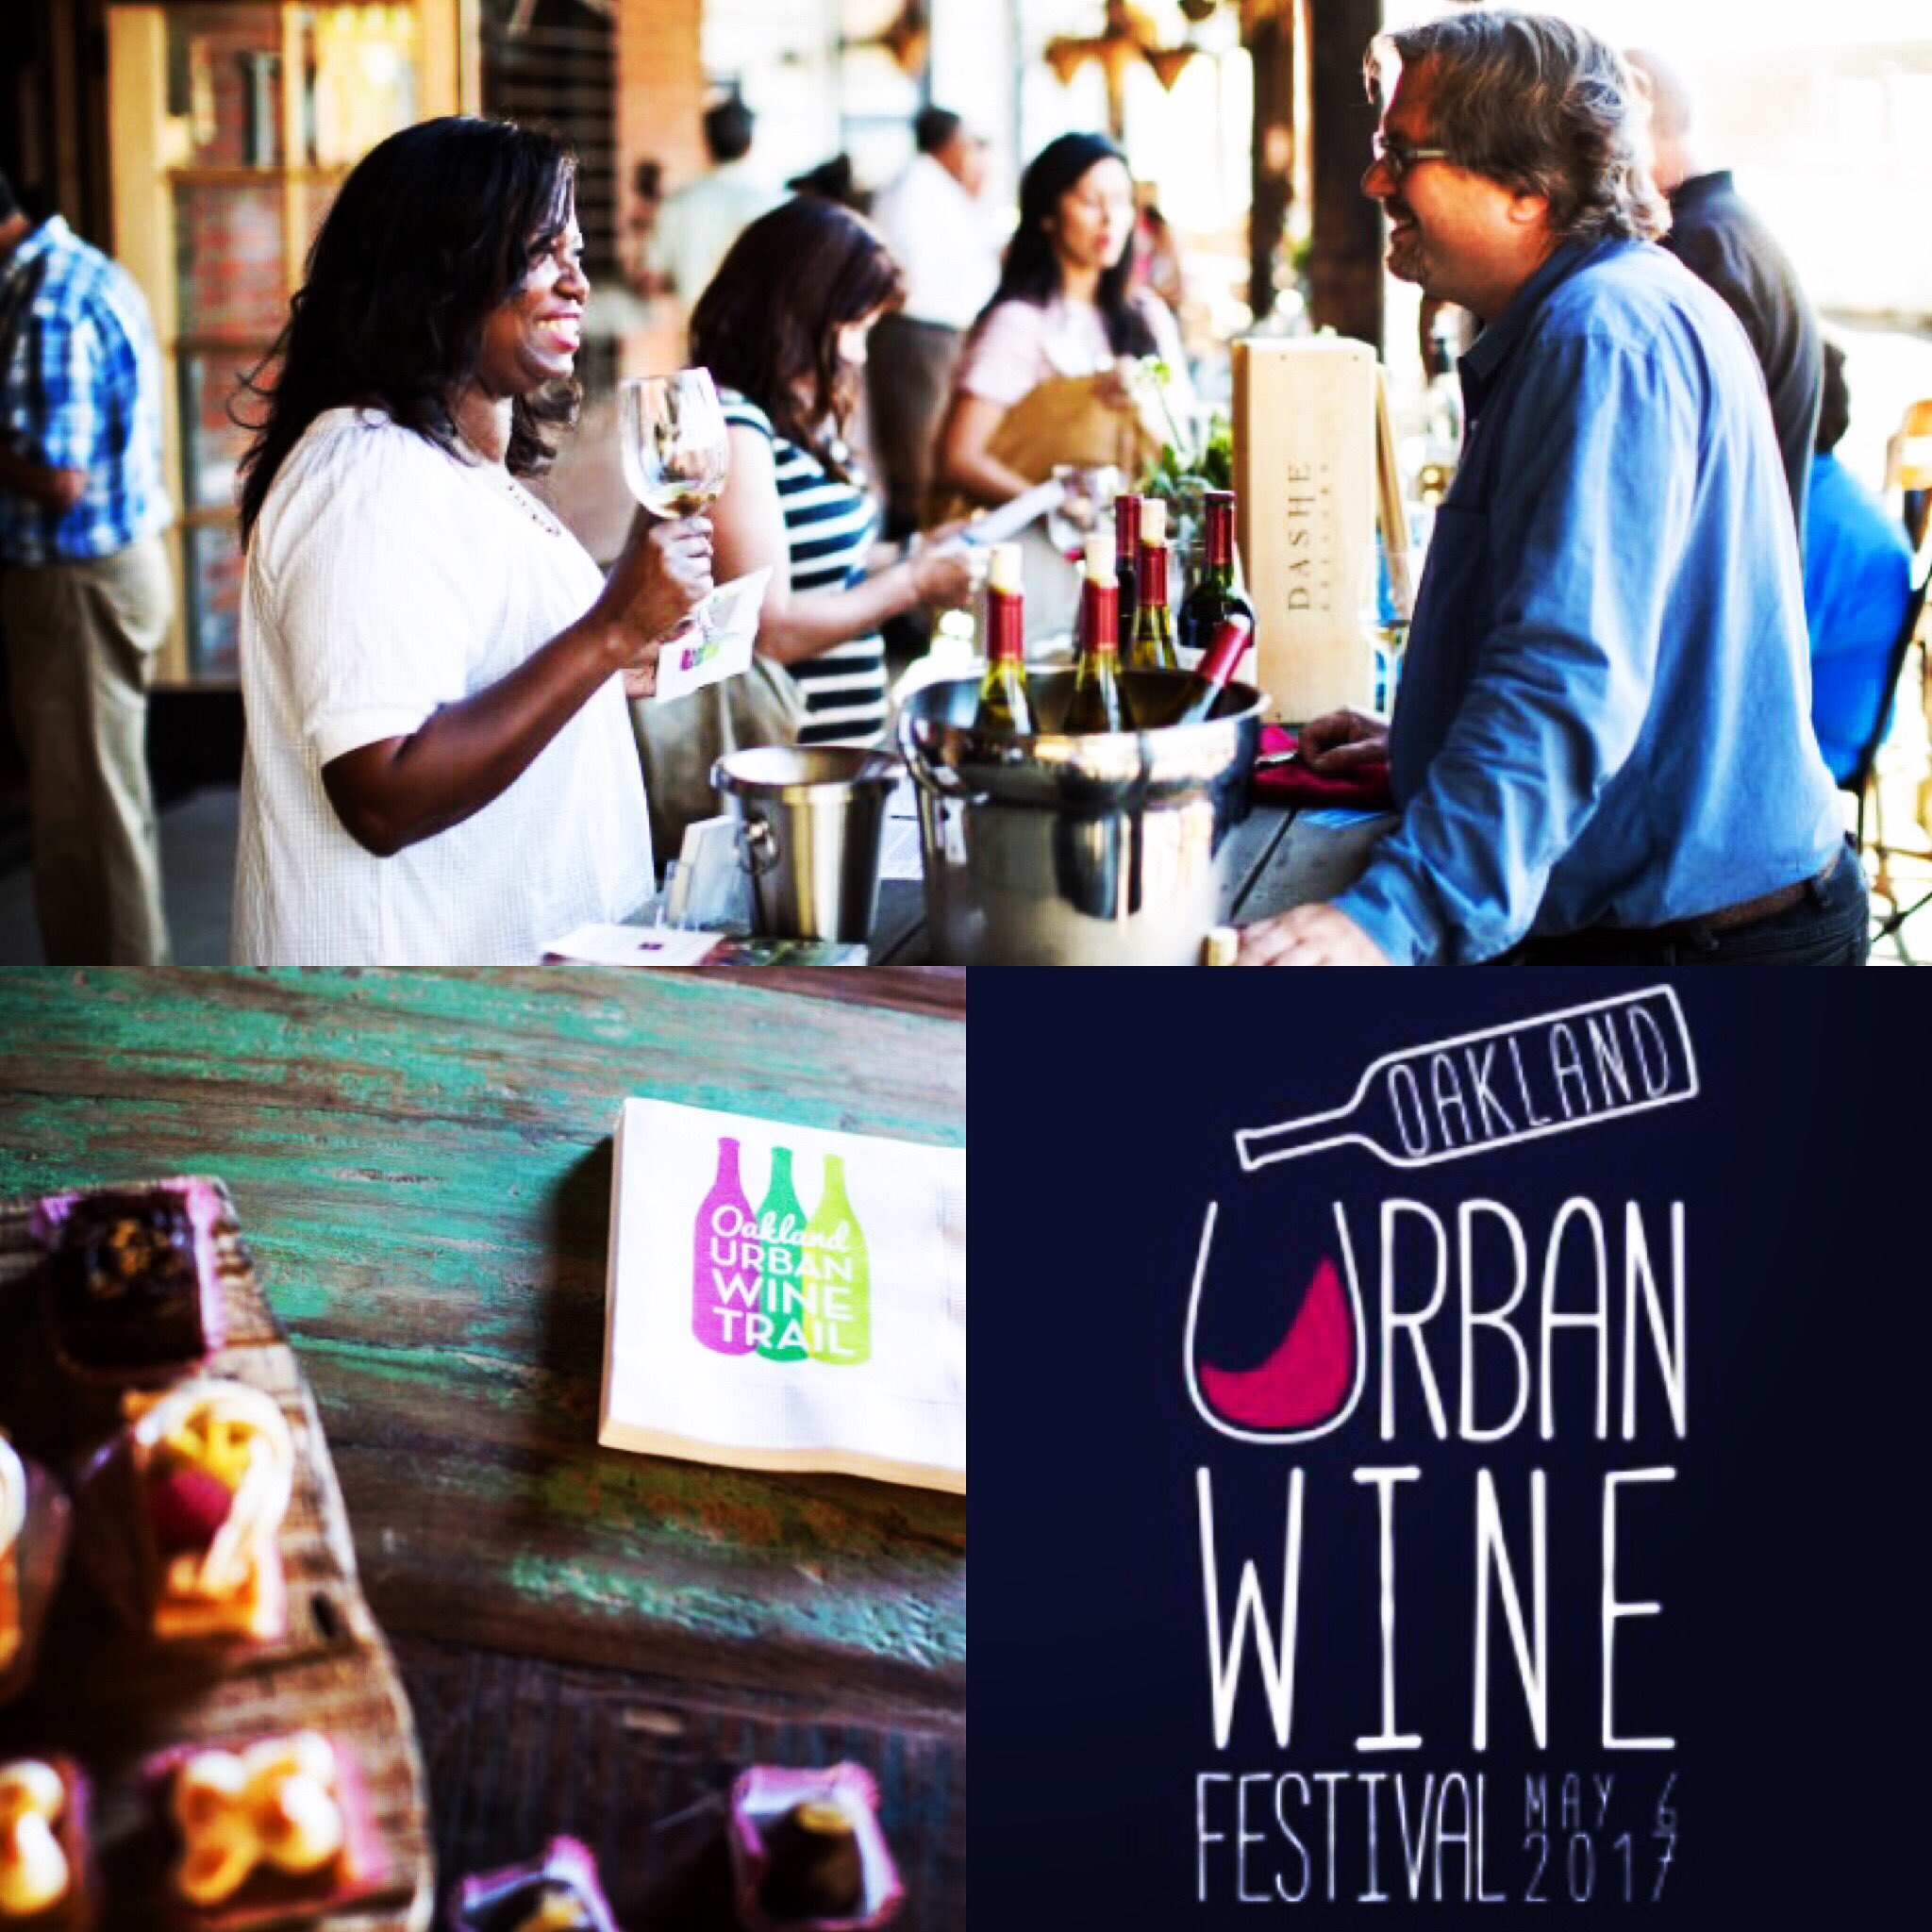 Join us May 6th @JackLondonSq for the Urban Wine Festival! Wine, food, local vendors, music & more!  https://t.co/nKV8pDwRVC https://t.co/XG5boDRHiv